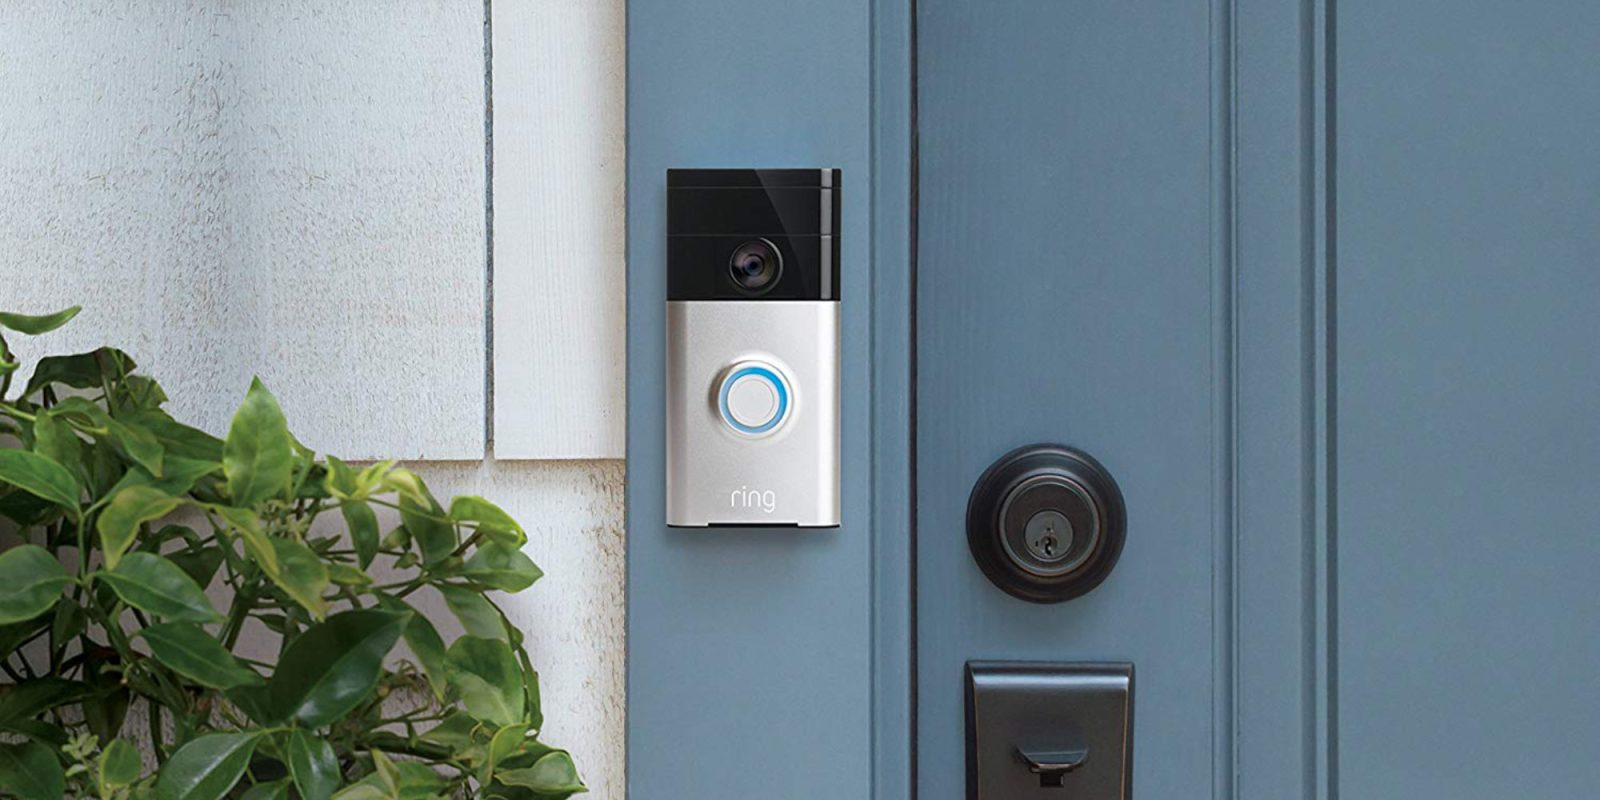 Retrofit the front door with Ring's OG Video Doorbell at $84 shipped